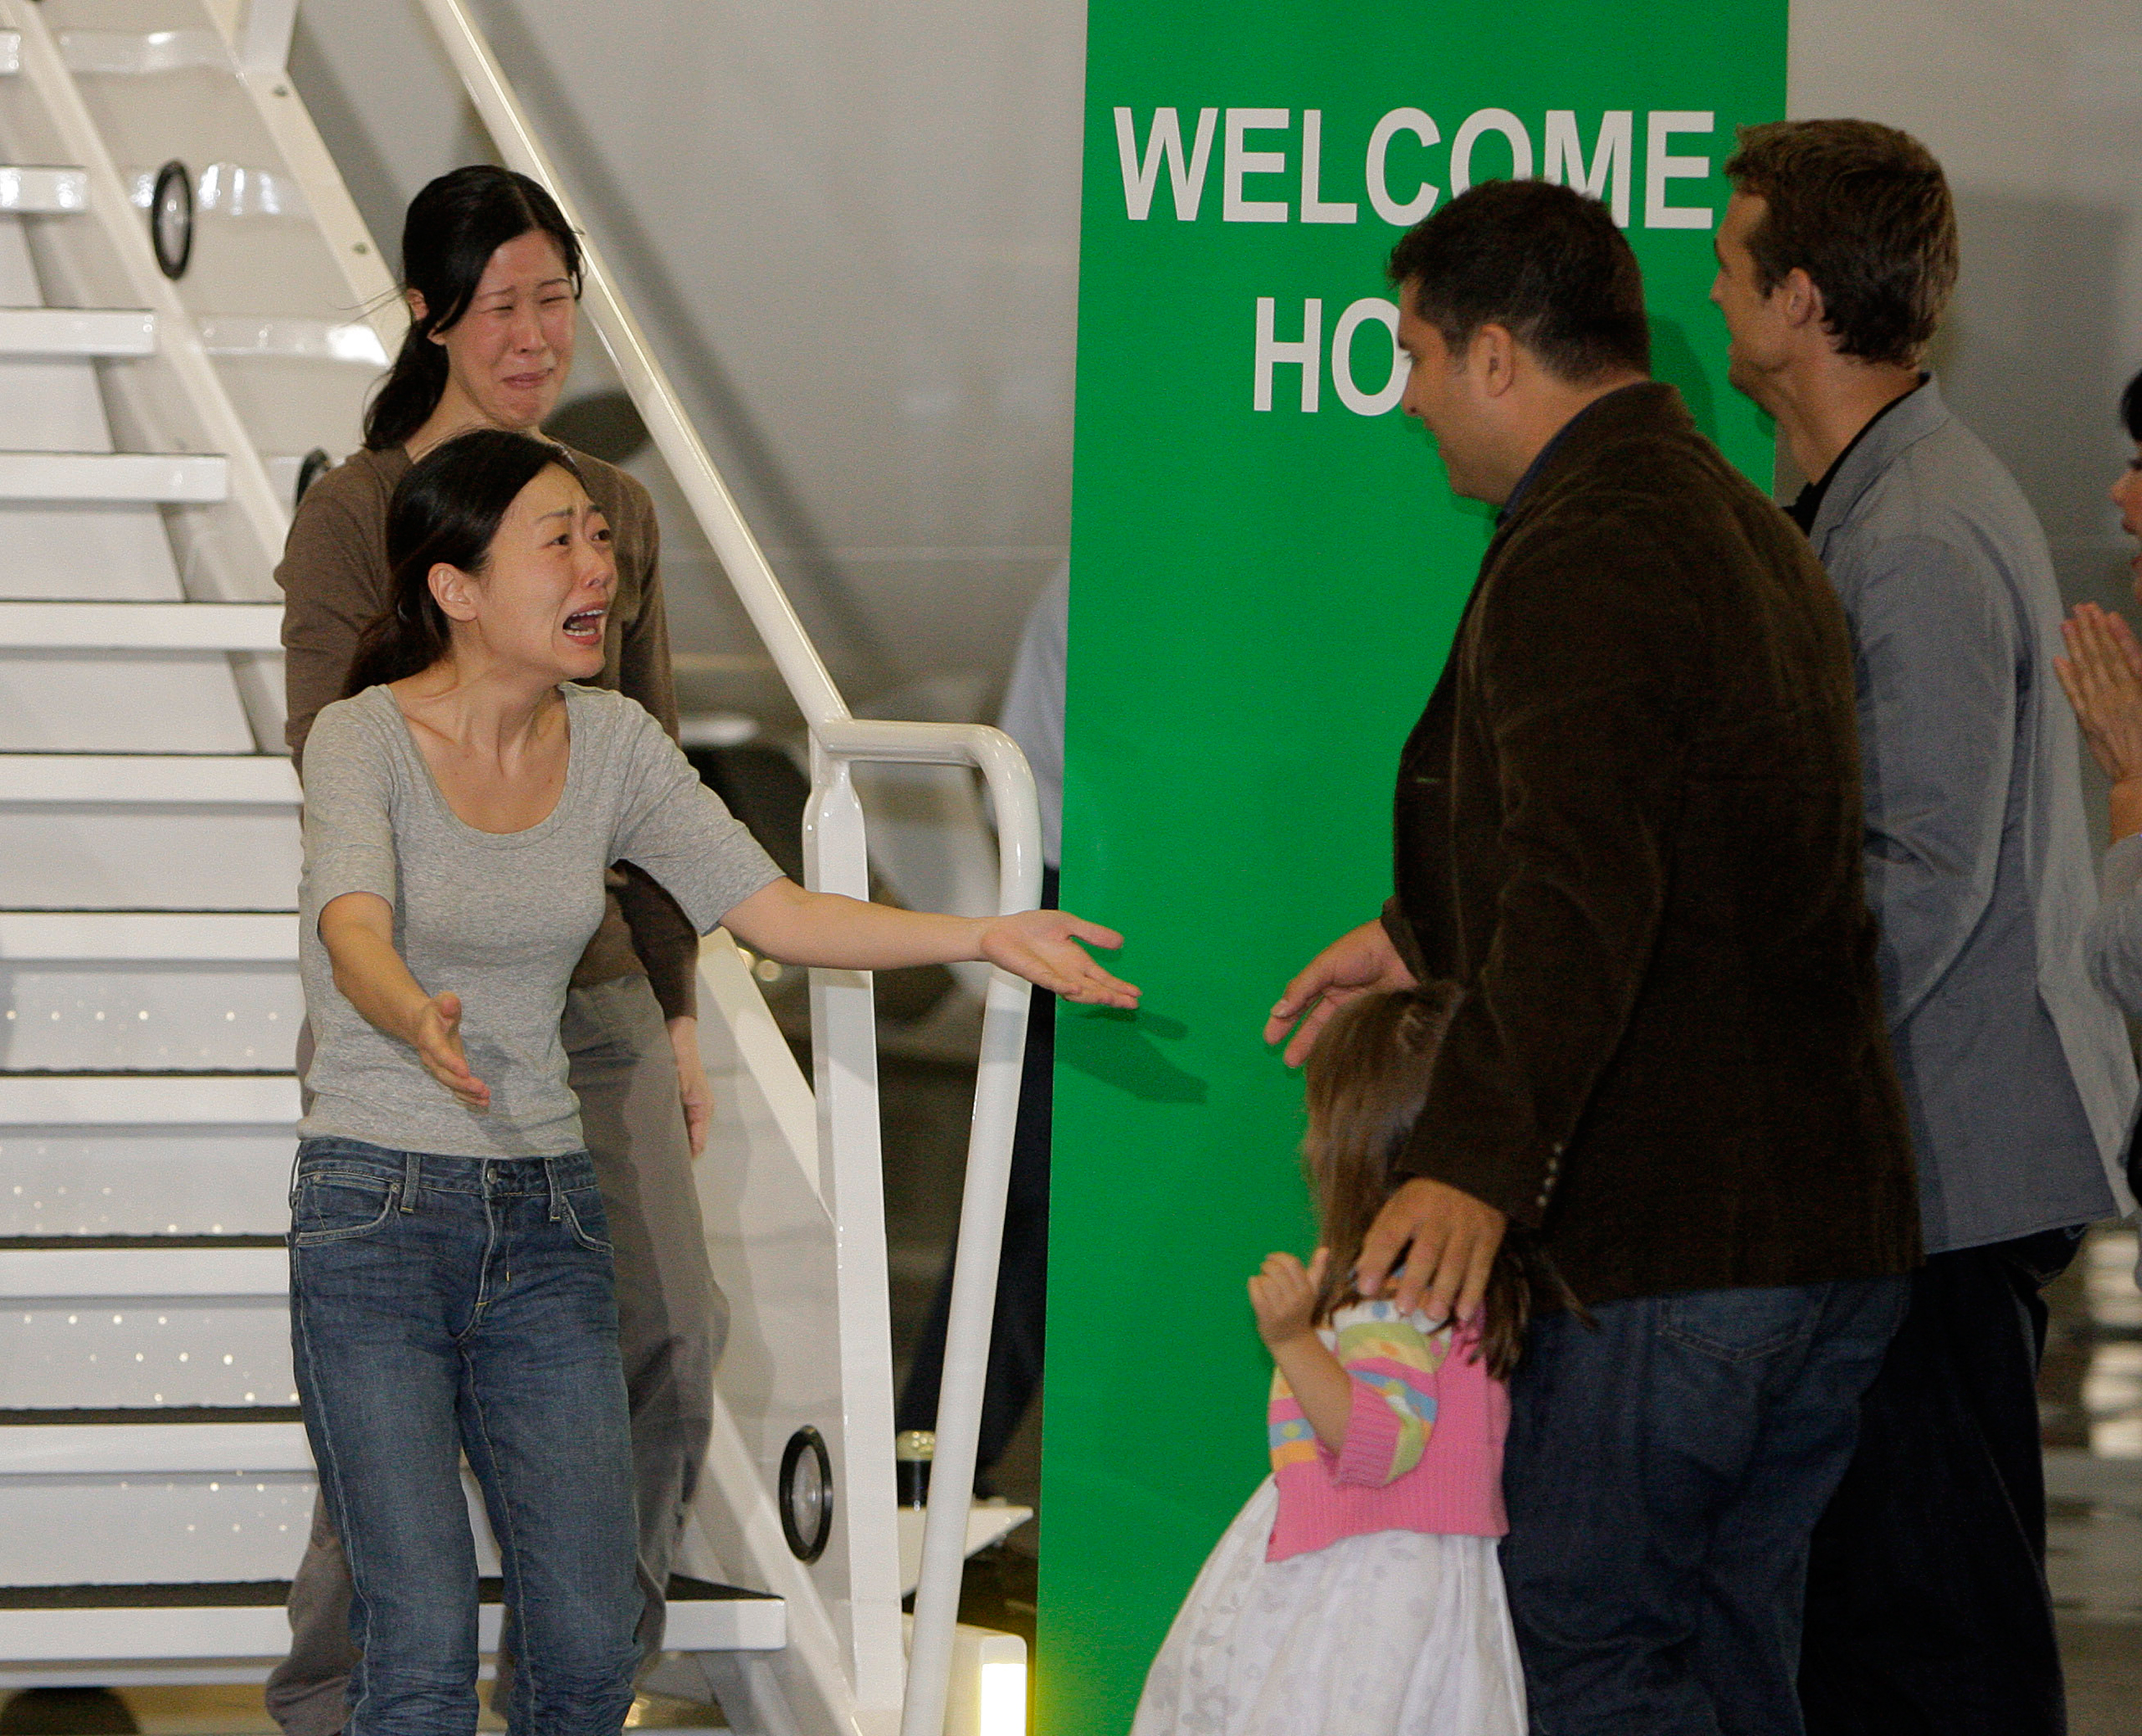 Euna Lee, left, and Laura Ling, are greeted by their husbands after their arrival at Bob Hope Airport in Burbank, Calif., on Aug. 5, 2009. The two American journalists had been arrested that March after allegedly crossing into North Korea from China.